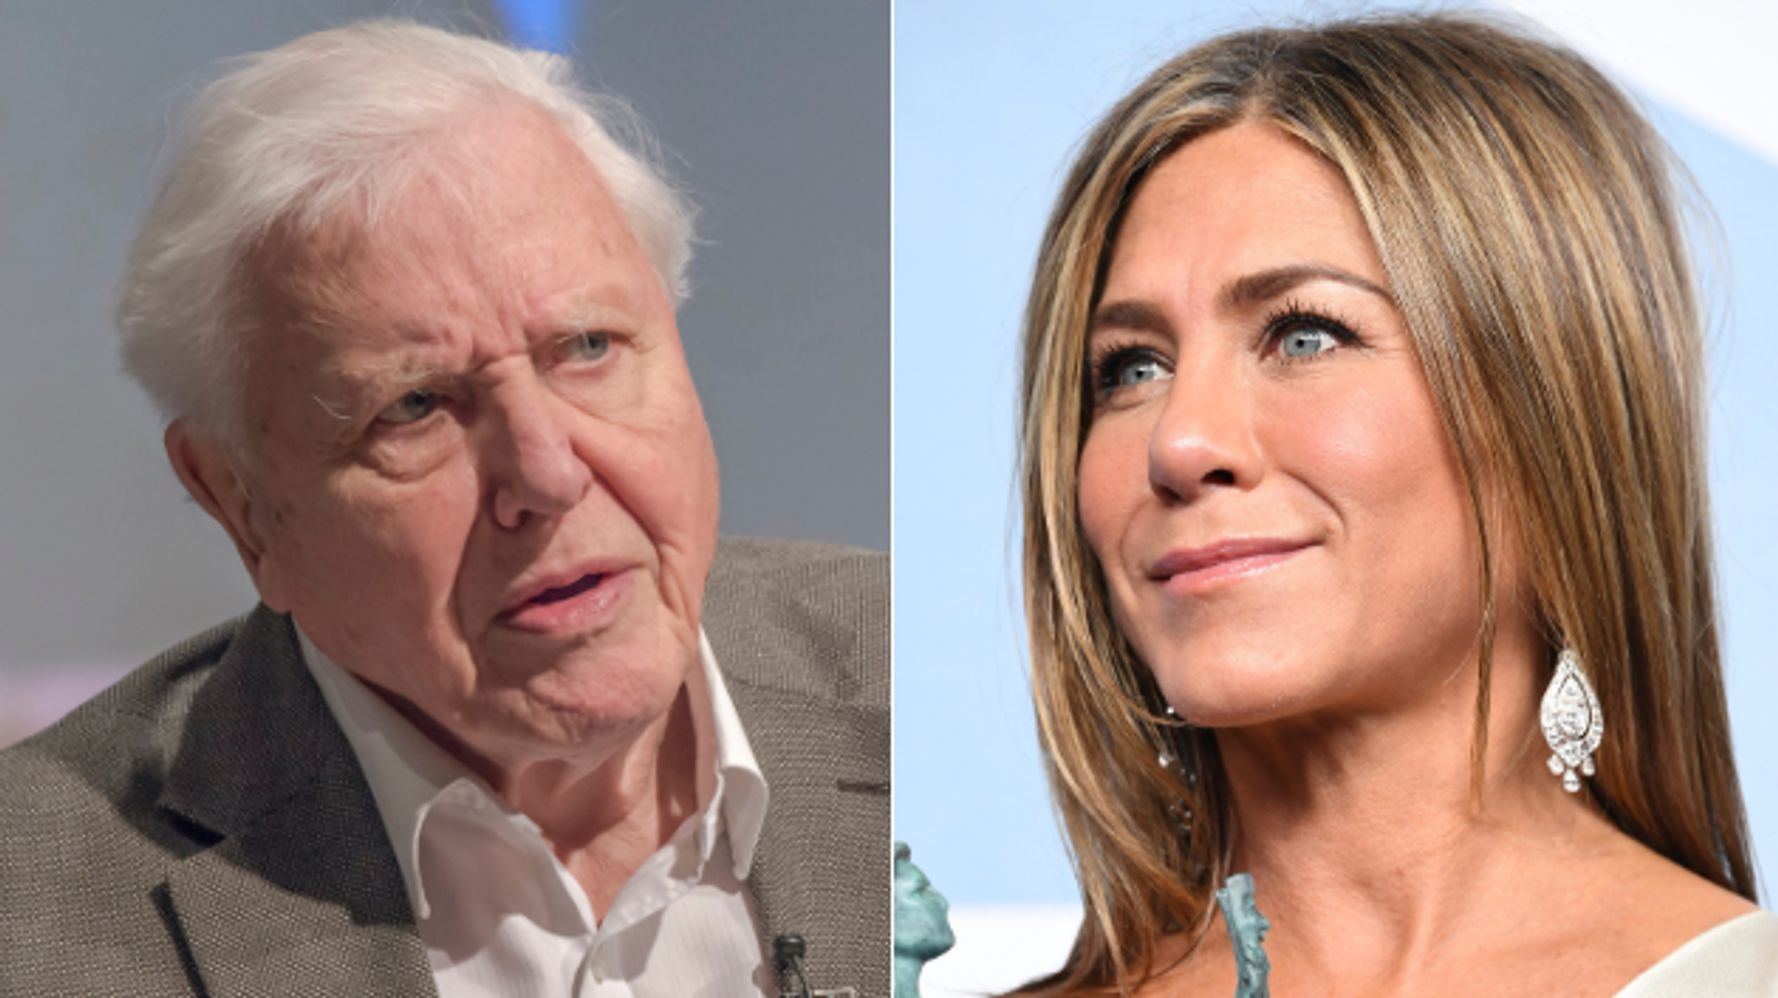 El Científico David Attenborough Supera El Récord De Jennifer Aniston En Instagram Por 31 Minutos El Huffpost Life